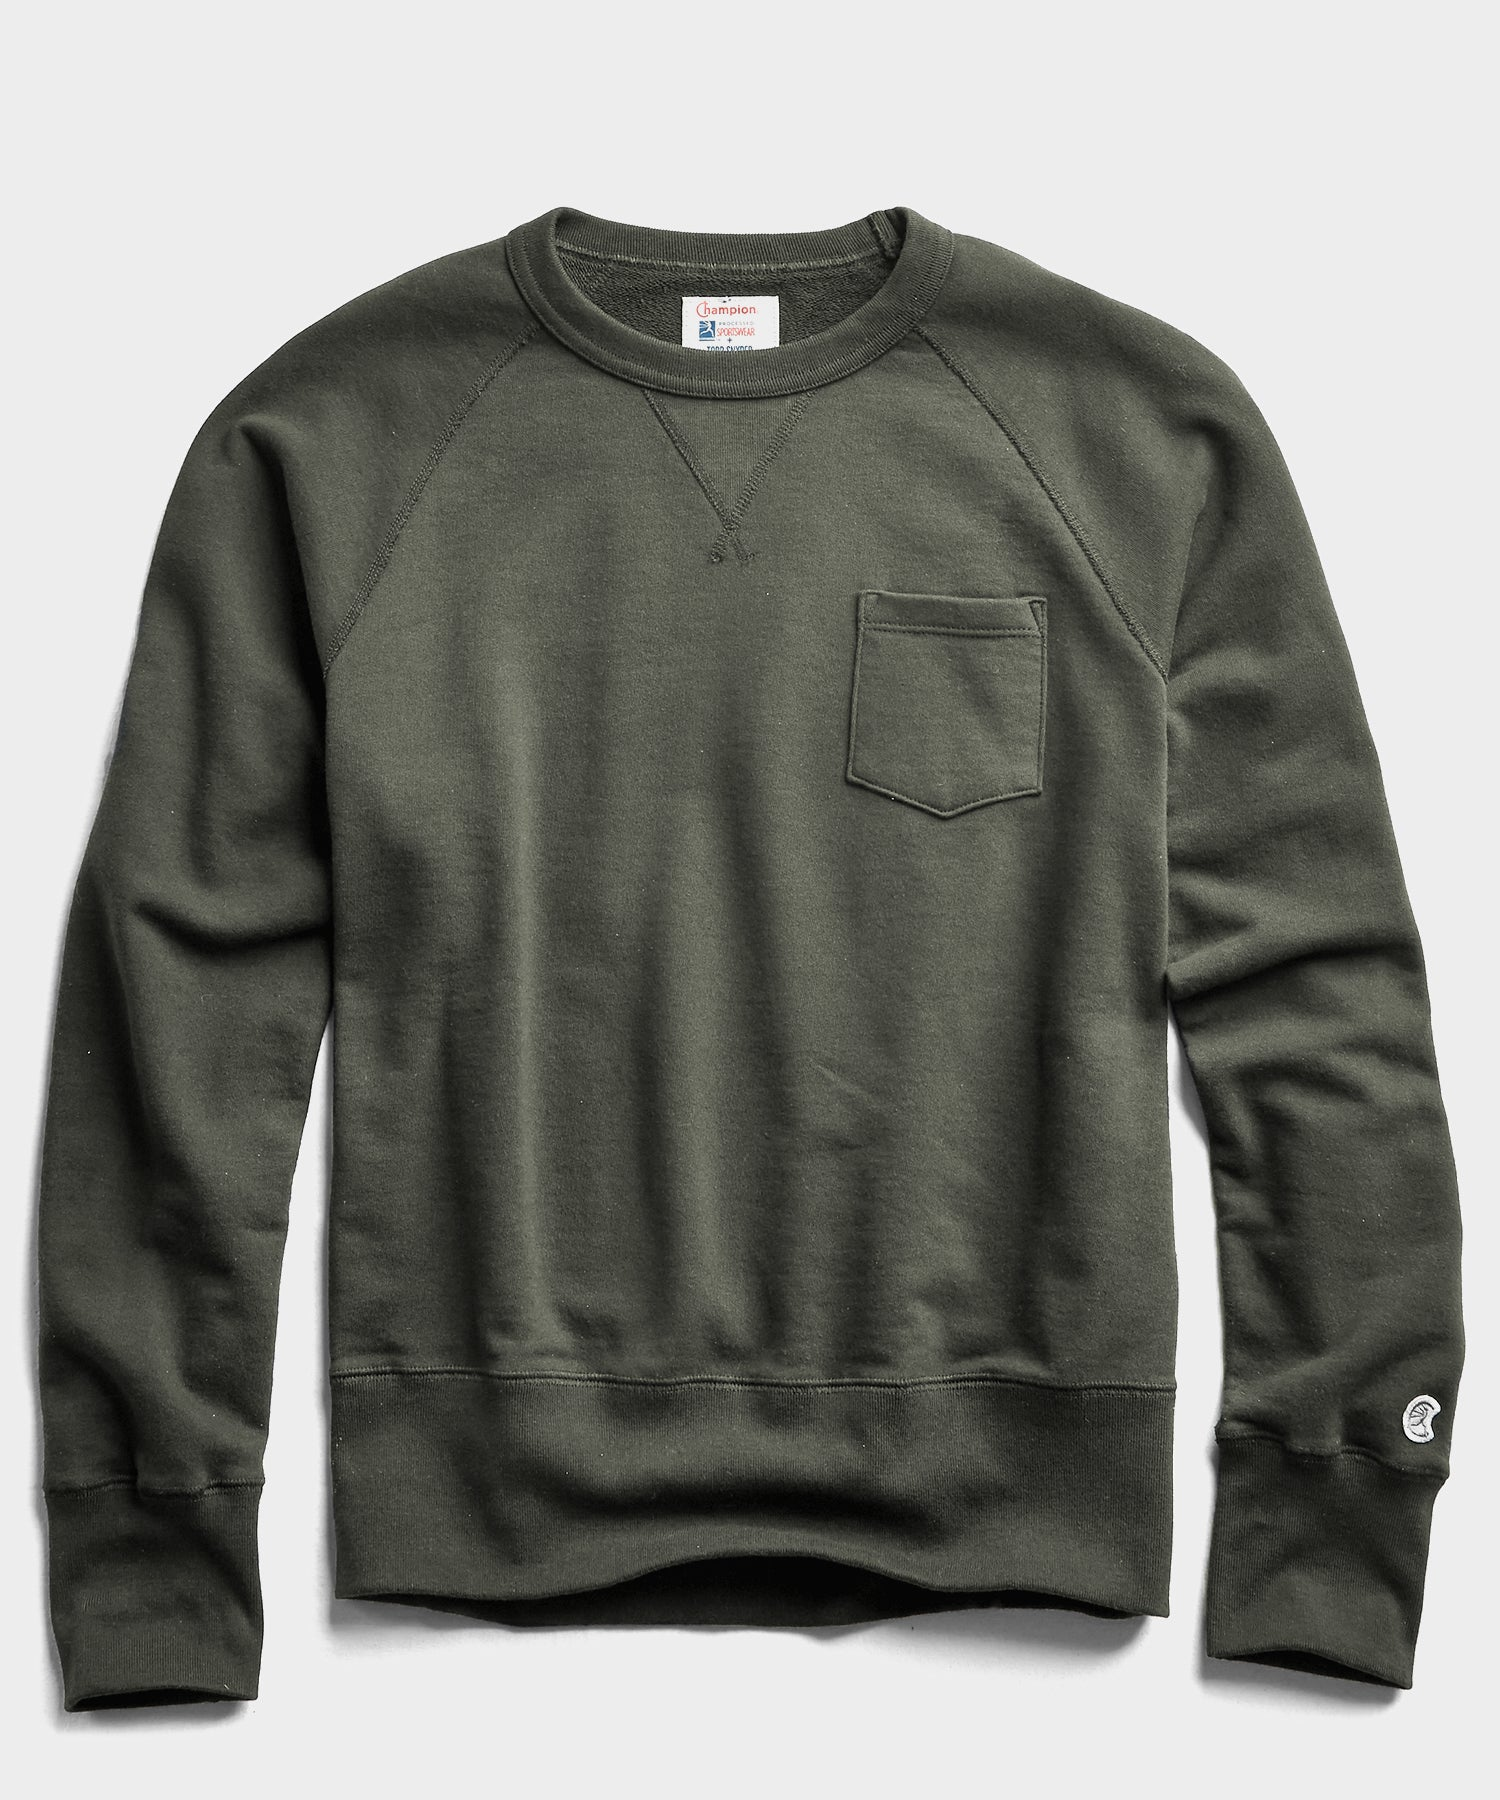 Midweight Pocket Sweatshirt in Army Green